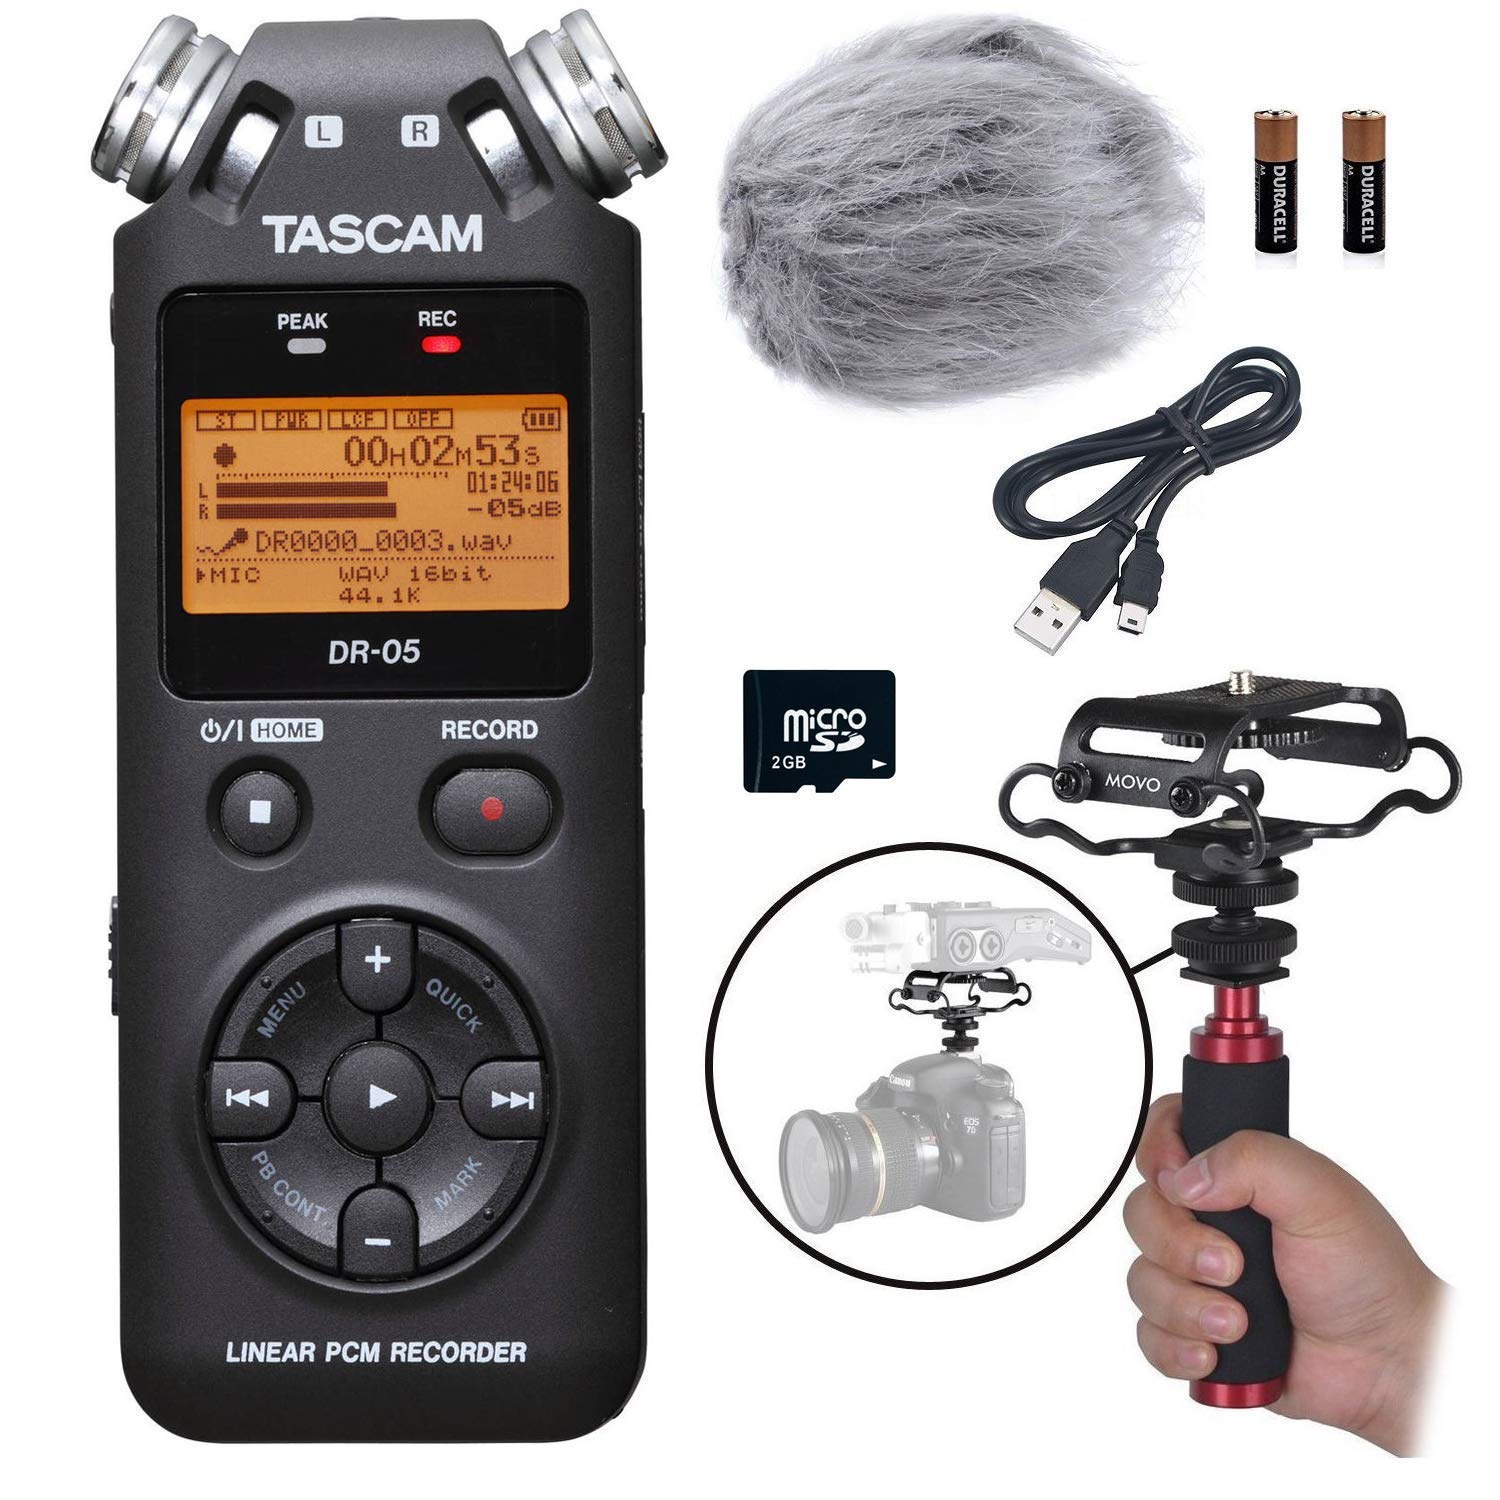 Tascam DR-05 Portable Handheld Digital Audio Recorder Bundle with Movo Deadcat Windscreen, Shockmount, Camera Mount and Mic Grip (Version 2 / Black) MZK-TASDR05